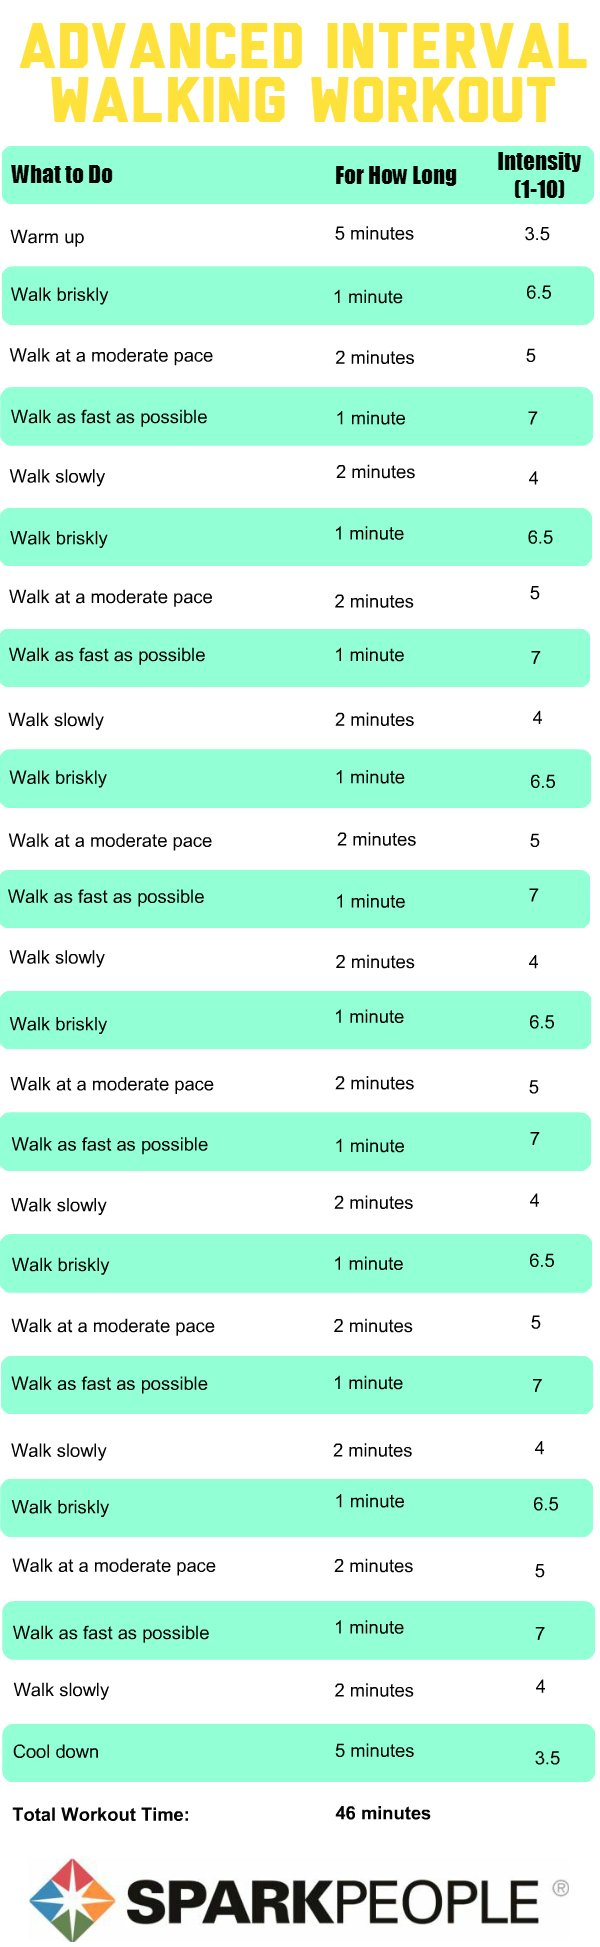 Advanced Interval Walking Workout